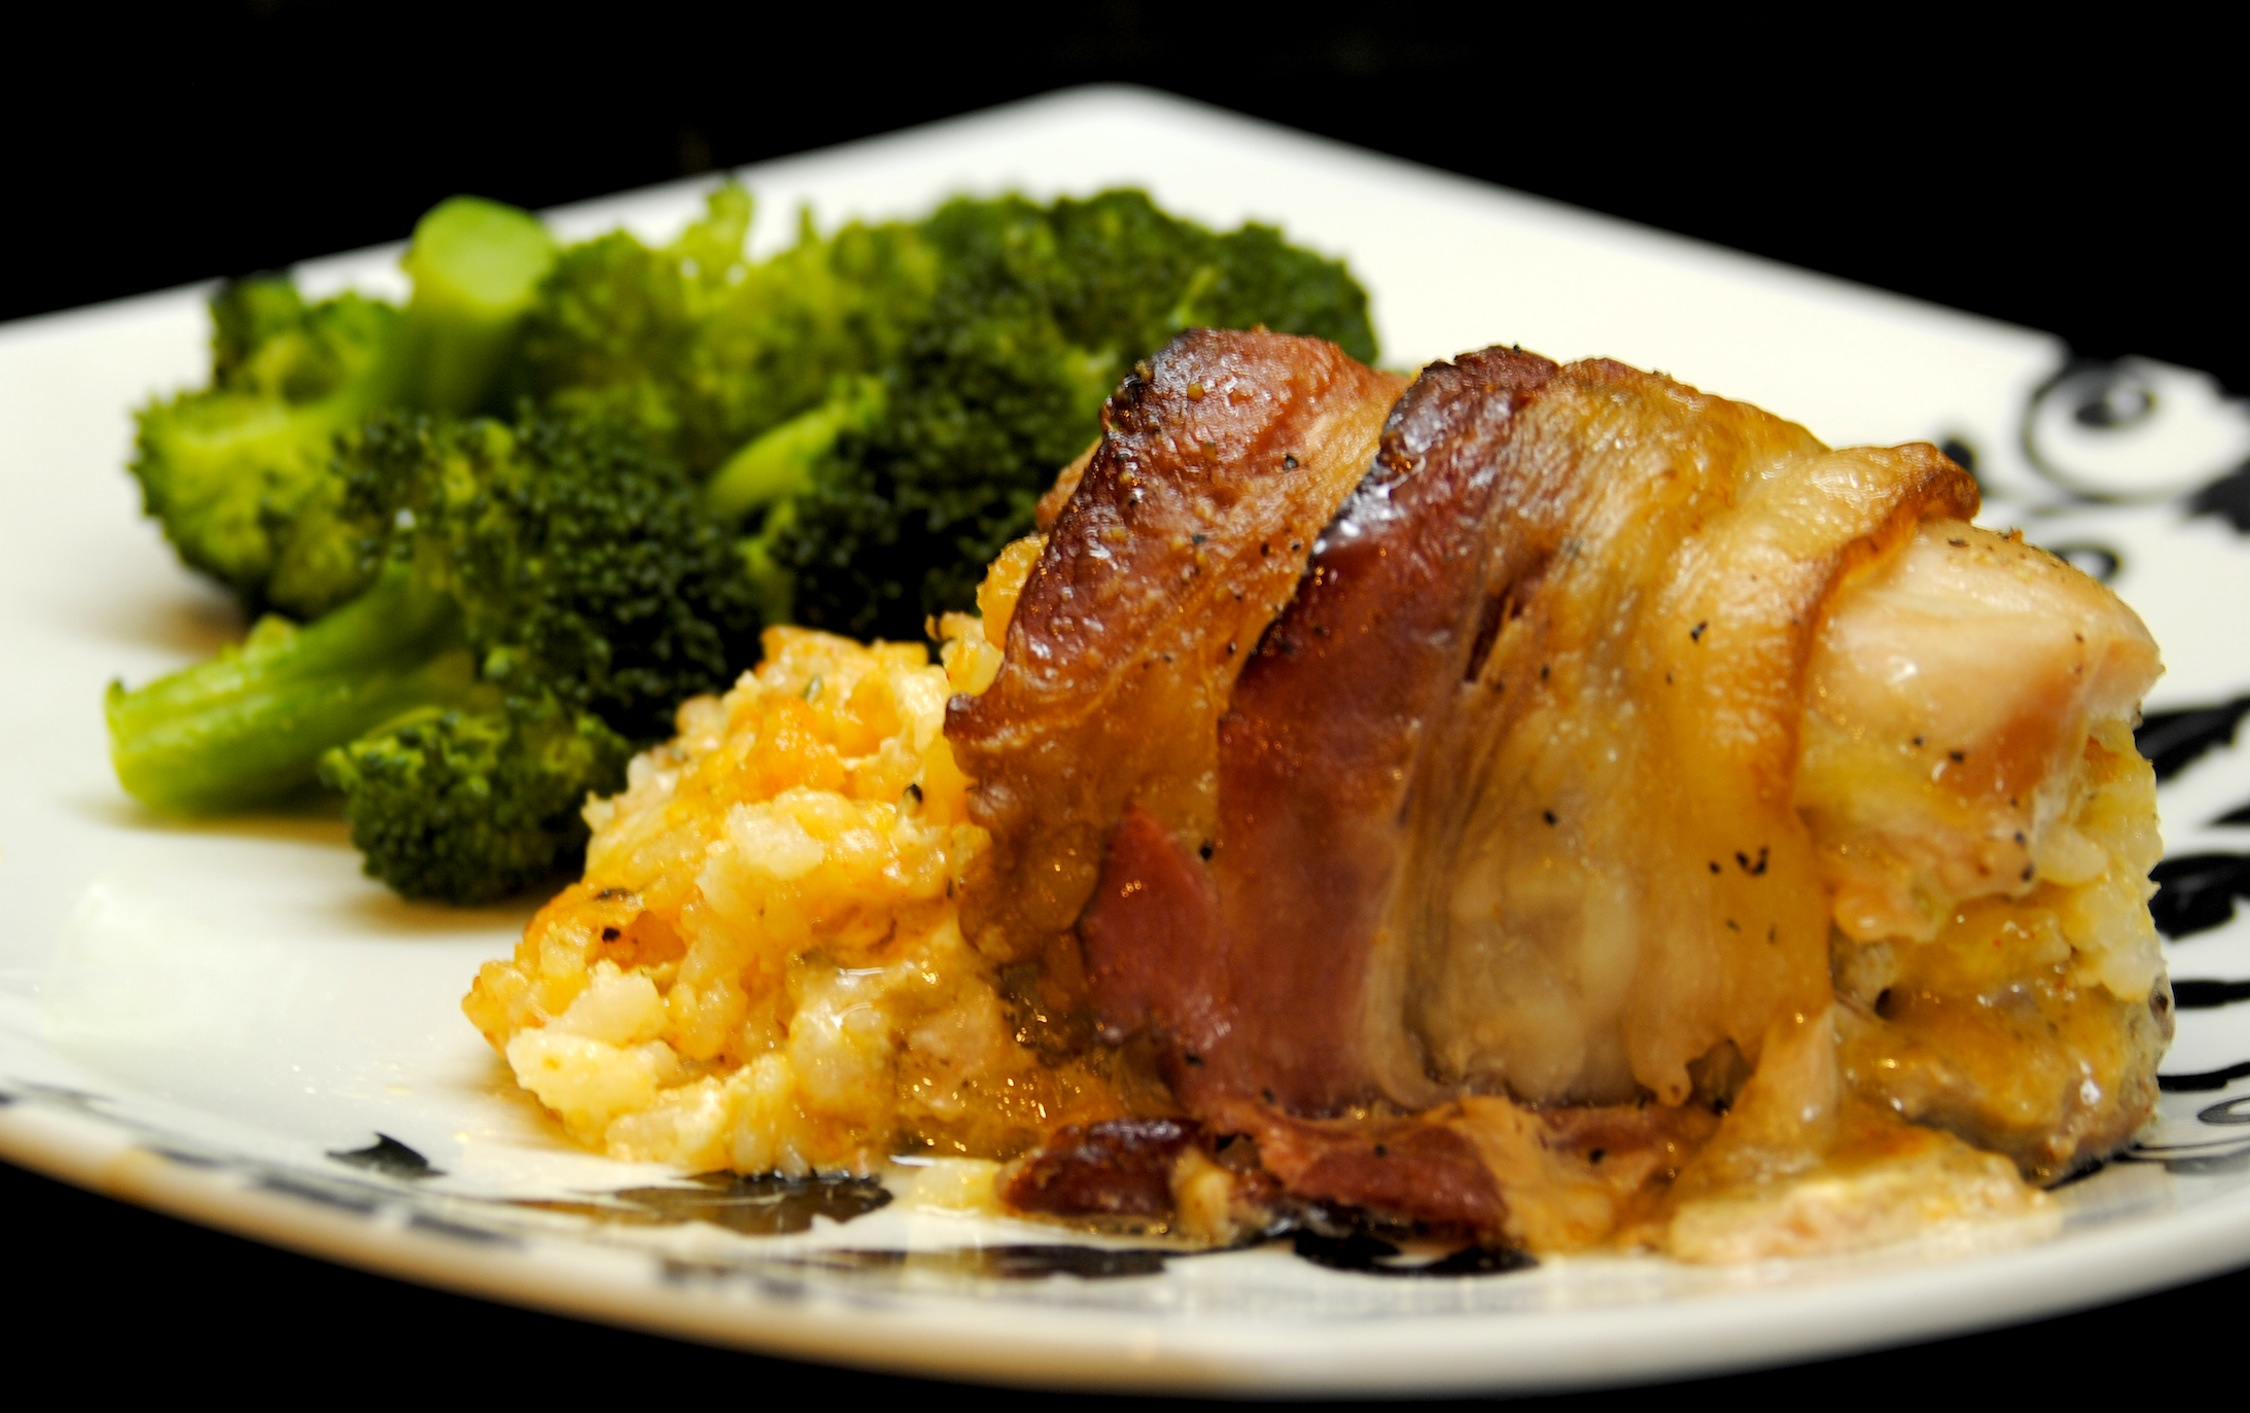 Stuffed Chicken Thigh, Wrapped in Bacon